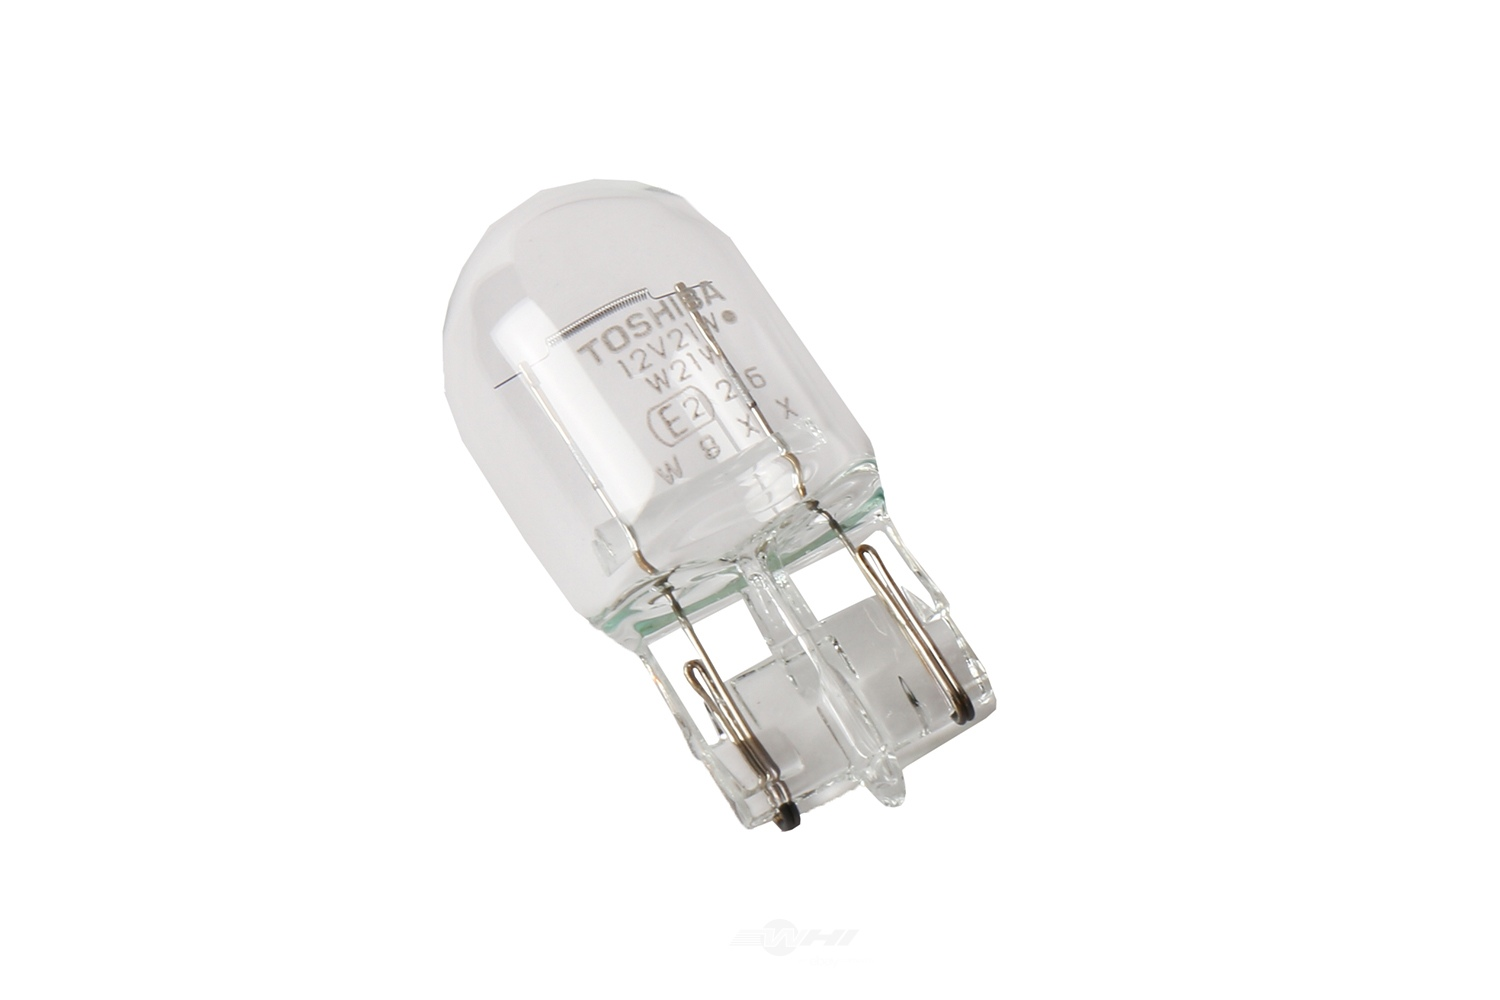 ACDELCO GM ORIGINAL EQUIPMENT - Back Up Light Bulb - DCB 15821754